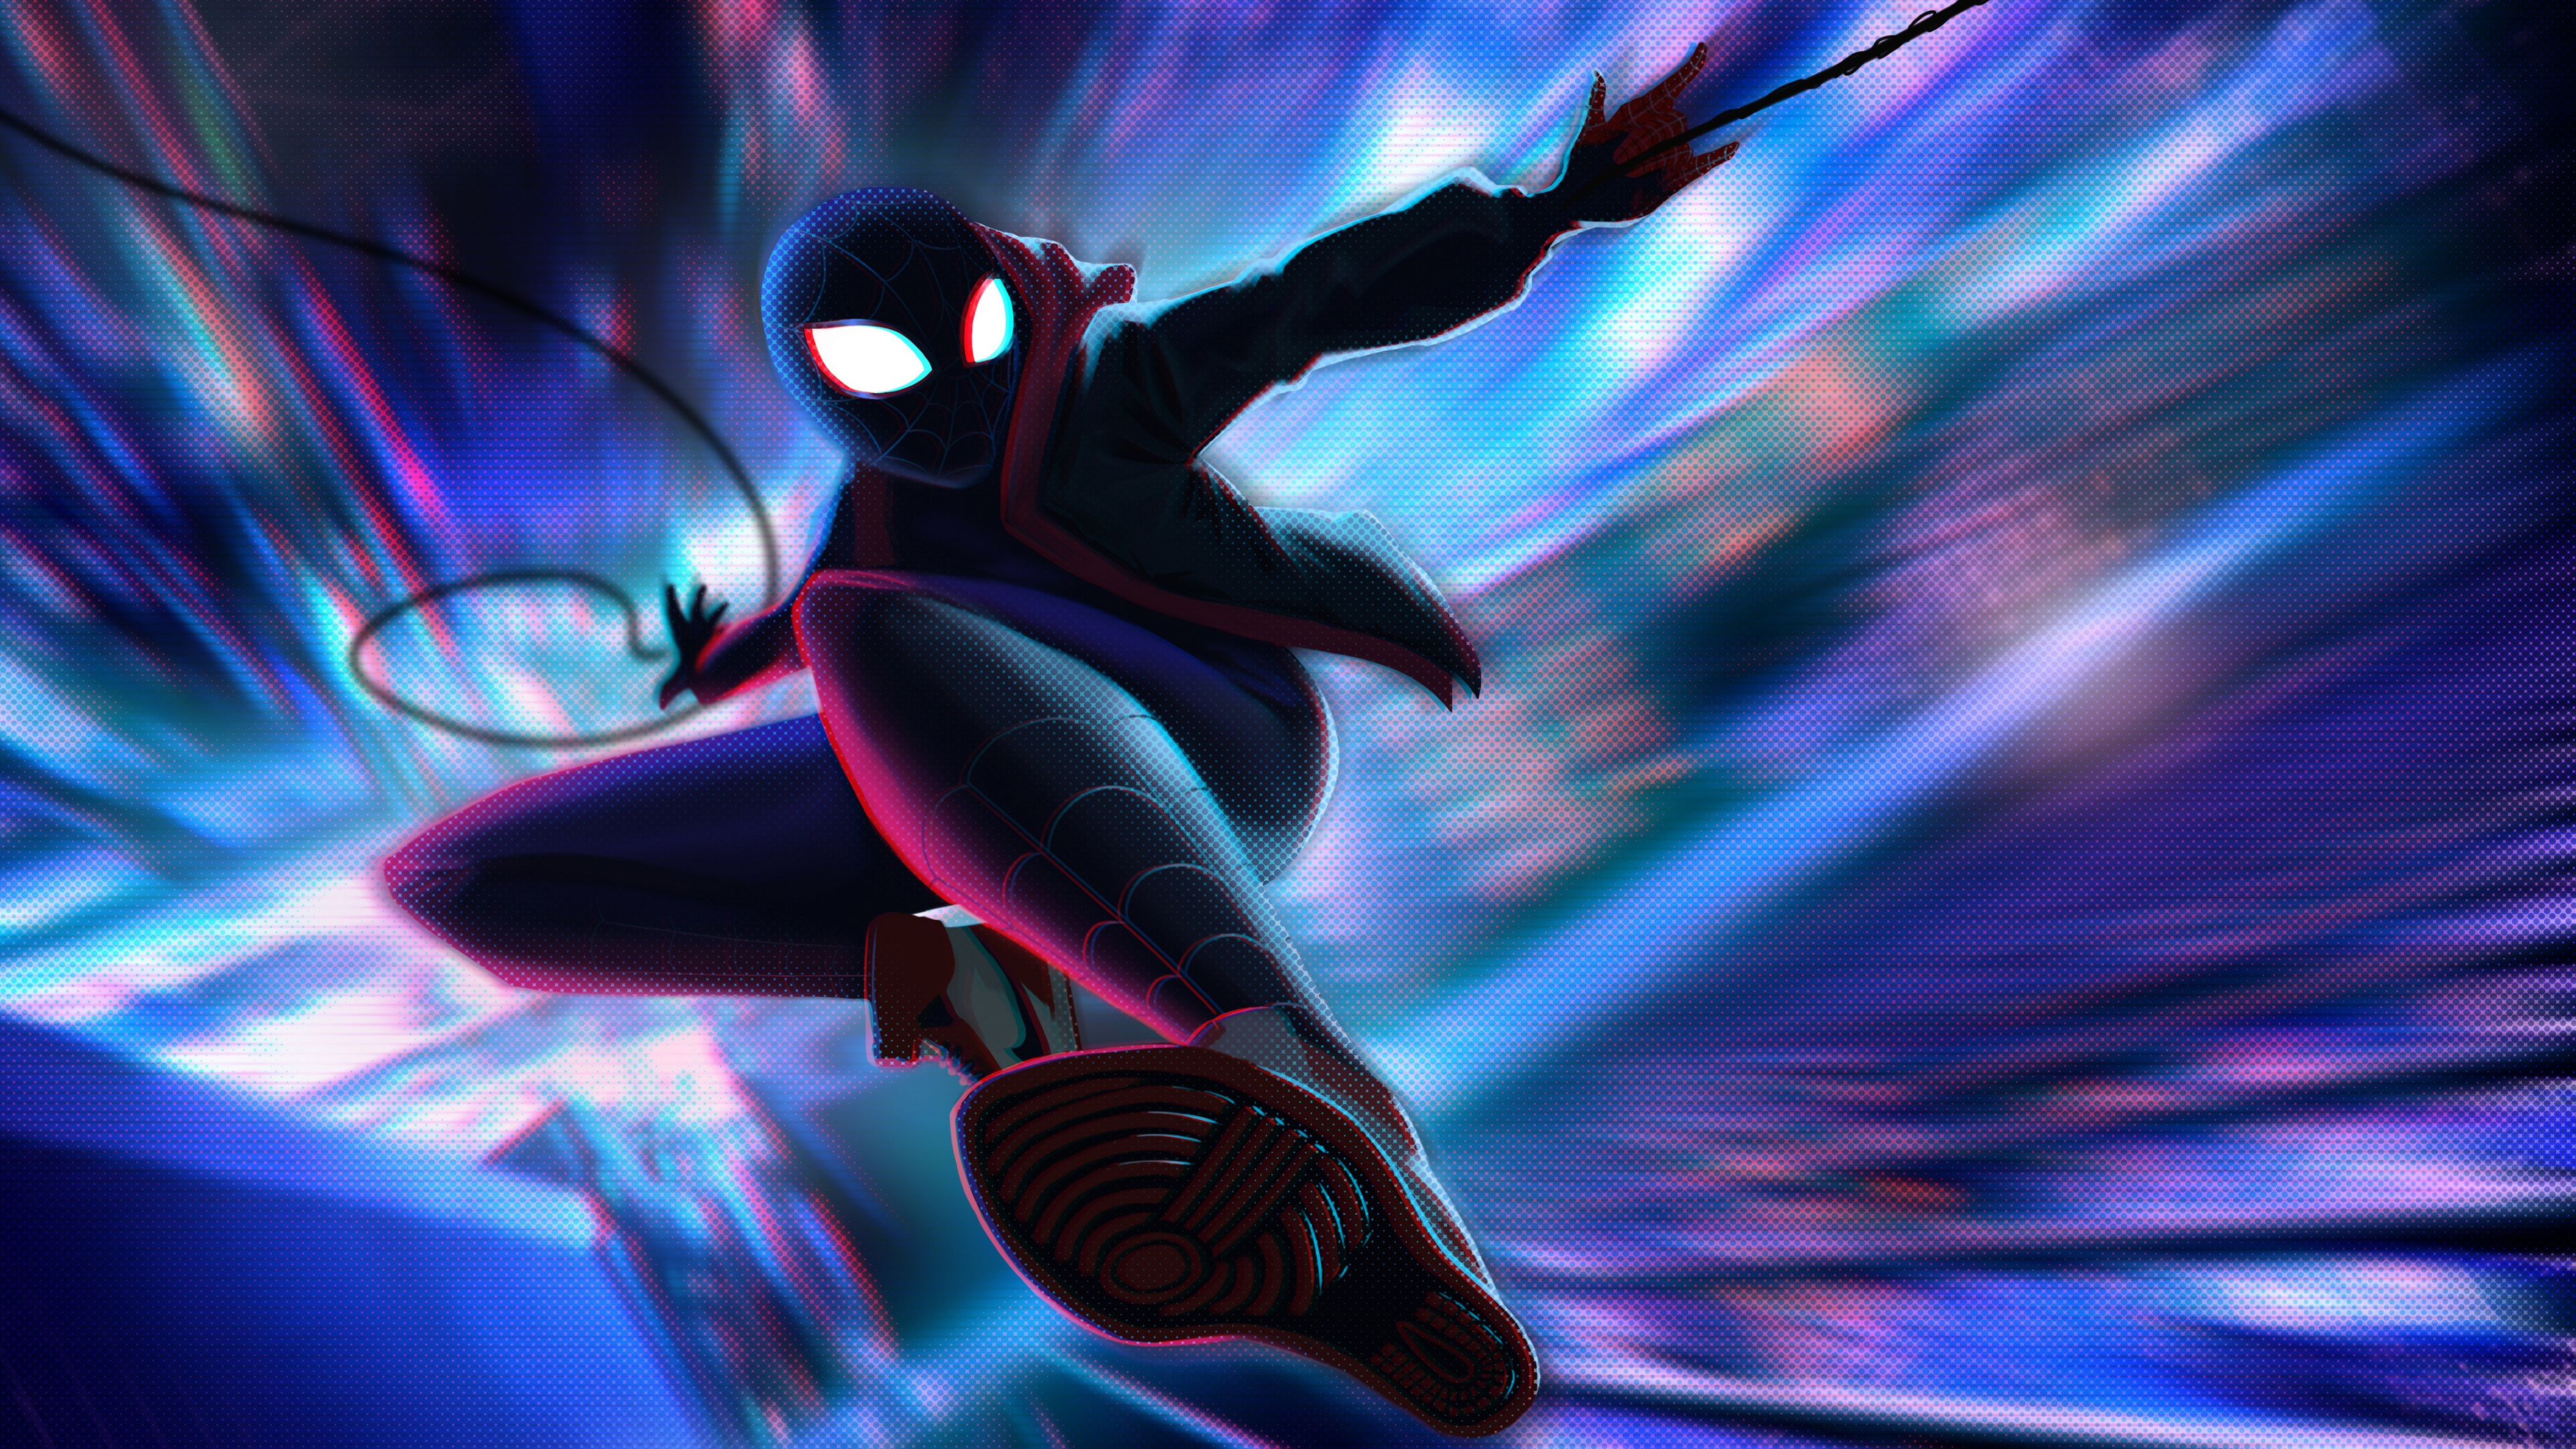 spiderman miles morales jump 4k 1547936611 - Spiderman Miles Morales Jump 4k - superheroes wallpapers, spiderman wallpapers, spiderman into the spider verse wallpapers, hd-wallpapers, digital art wallpapers, artwork wallpapers, artist wallpapers, 5k wallpapers, 4k-wallpapers